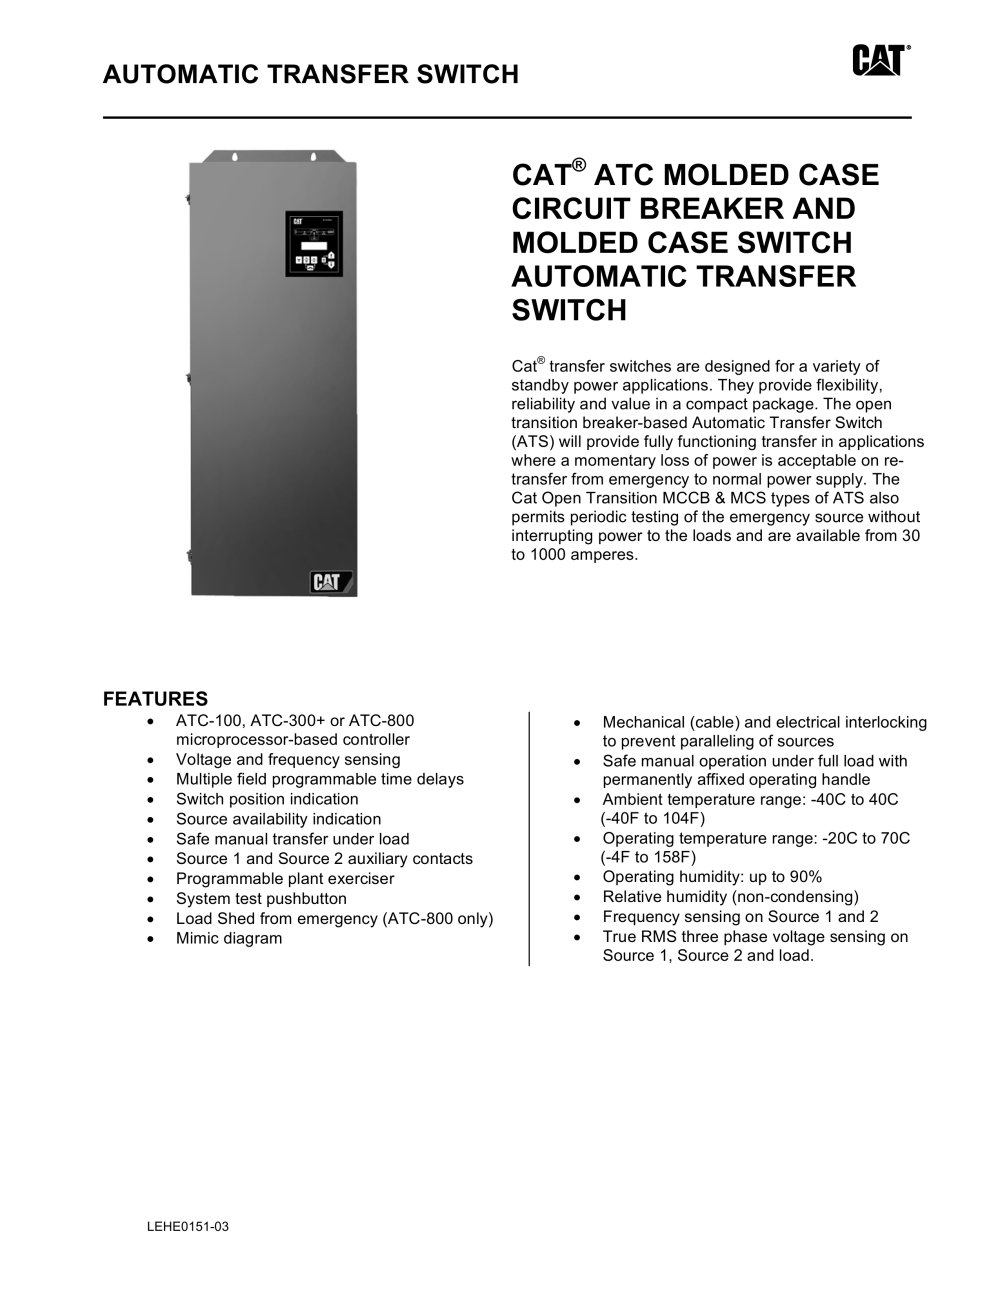 transfer switches for portable generators, whole house transfer switch diagram, ignition switch diagram, circuit diagram, transfer switch installation, transfer switch cable, transfer switch connections, transfer switch system, home transfer switch diagram, transfer switch circuit, automatic transfer switch diagram, transfer switch service, transfer switch cover, transfer switch generator, transfer switch transformer, transfer switch schematic, auto on off switch diagram, transfer switches for home use, transfer switch manual, transfer switch heater, on cat d348 transfer switch wiring diagram